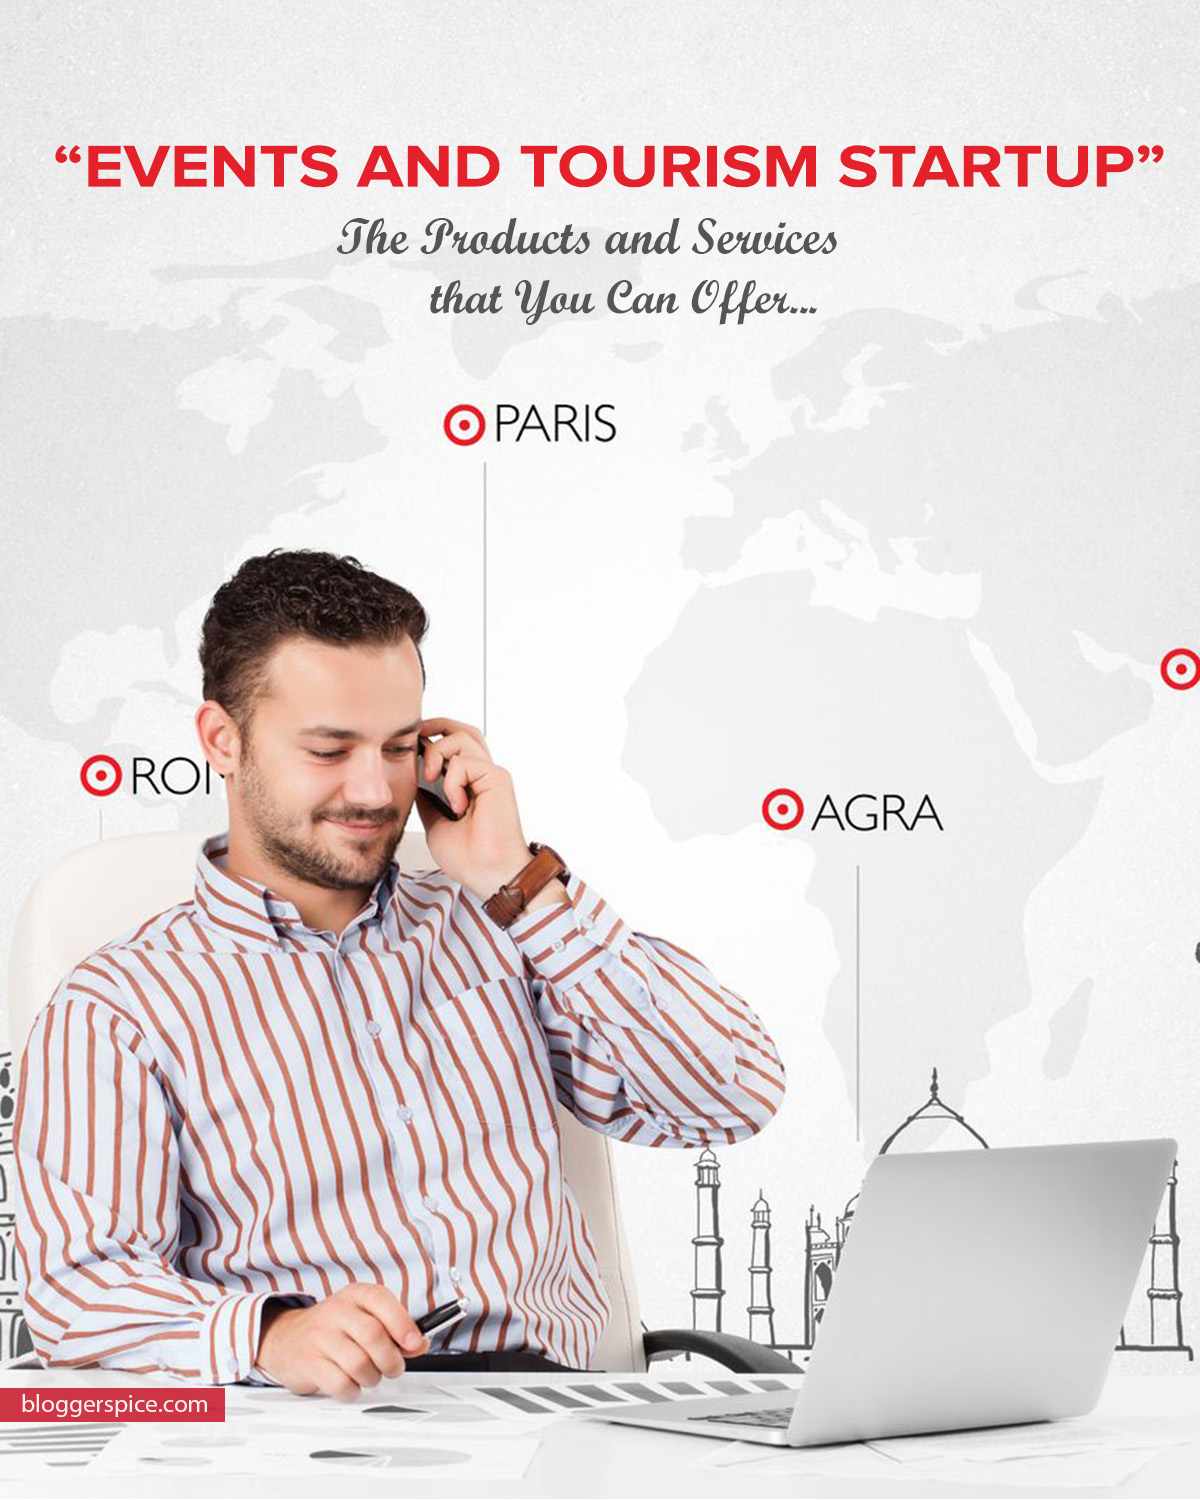 How To Start An Tourism Business?